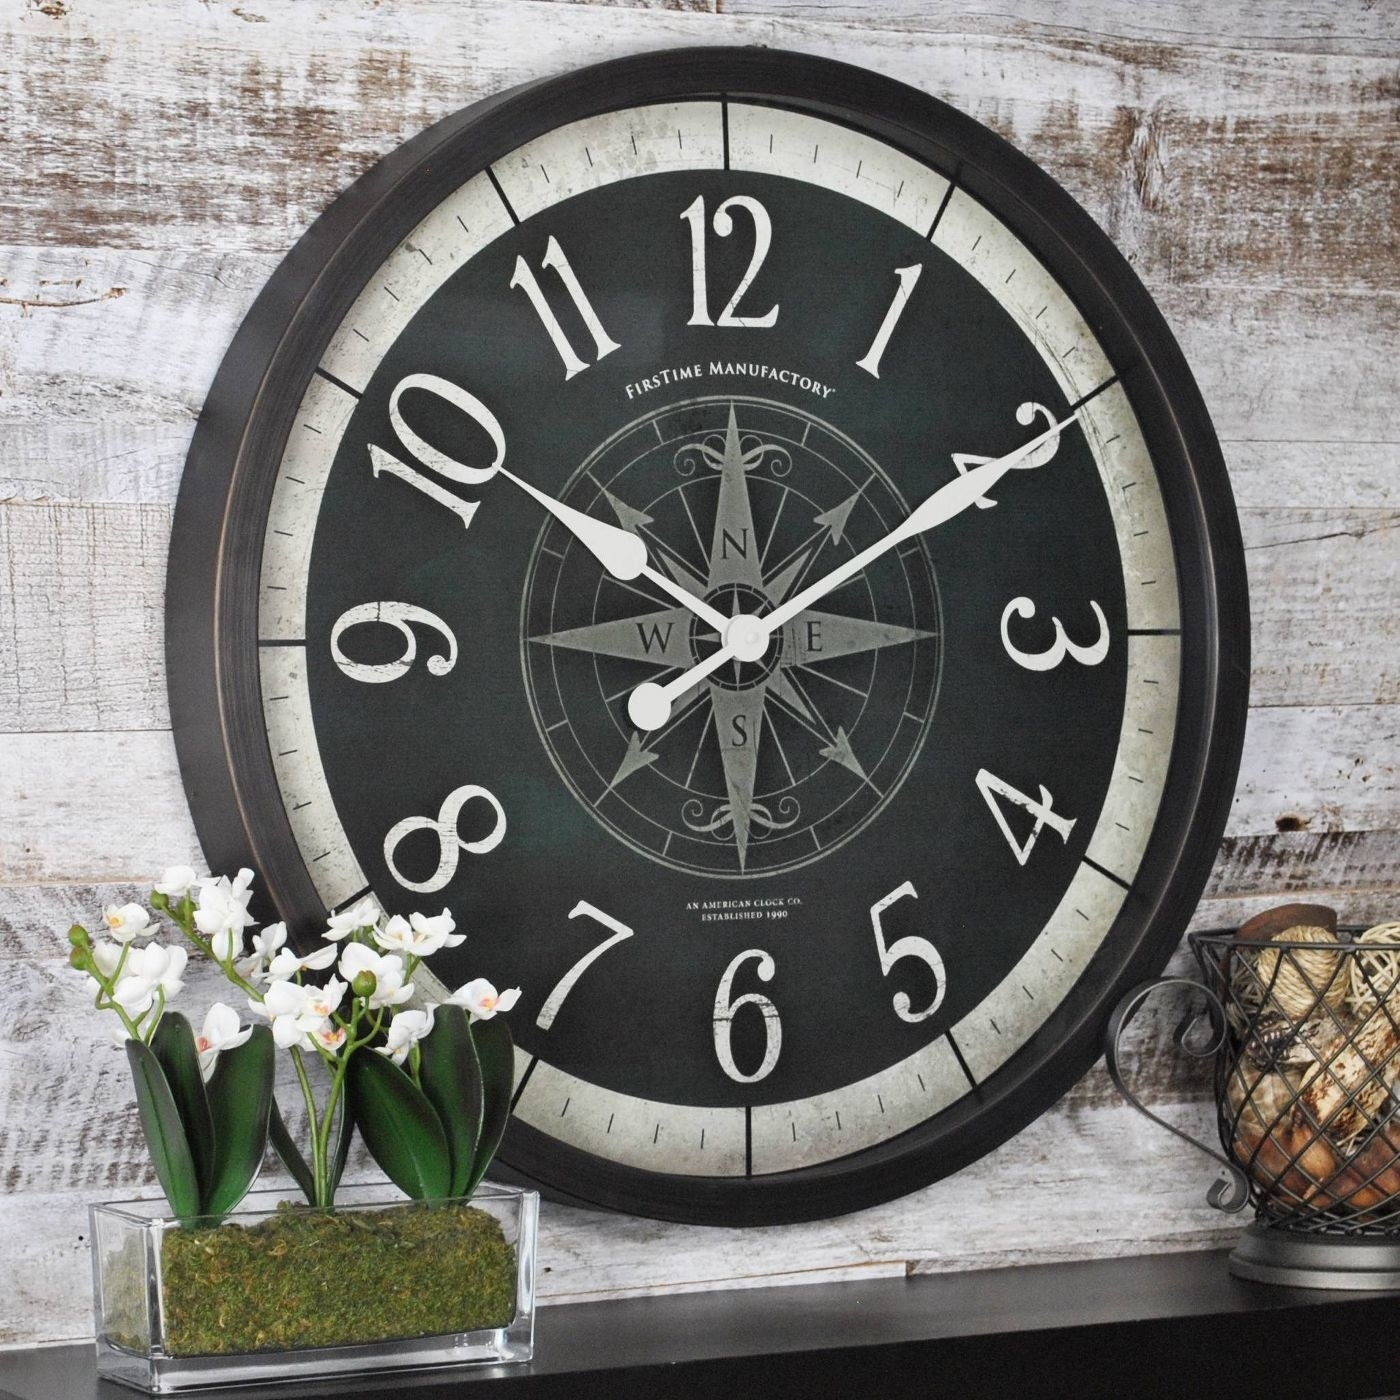 the black clock with white numbers